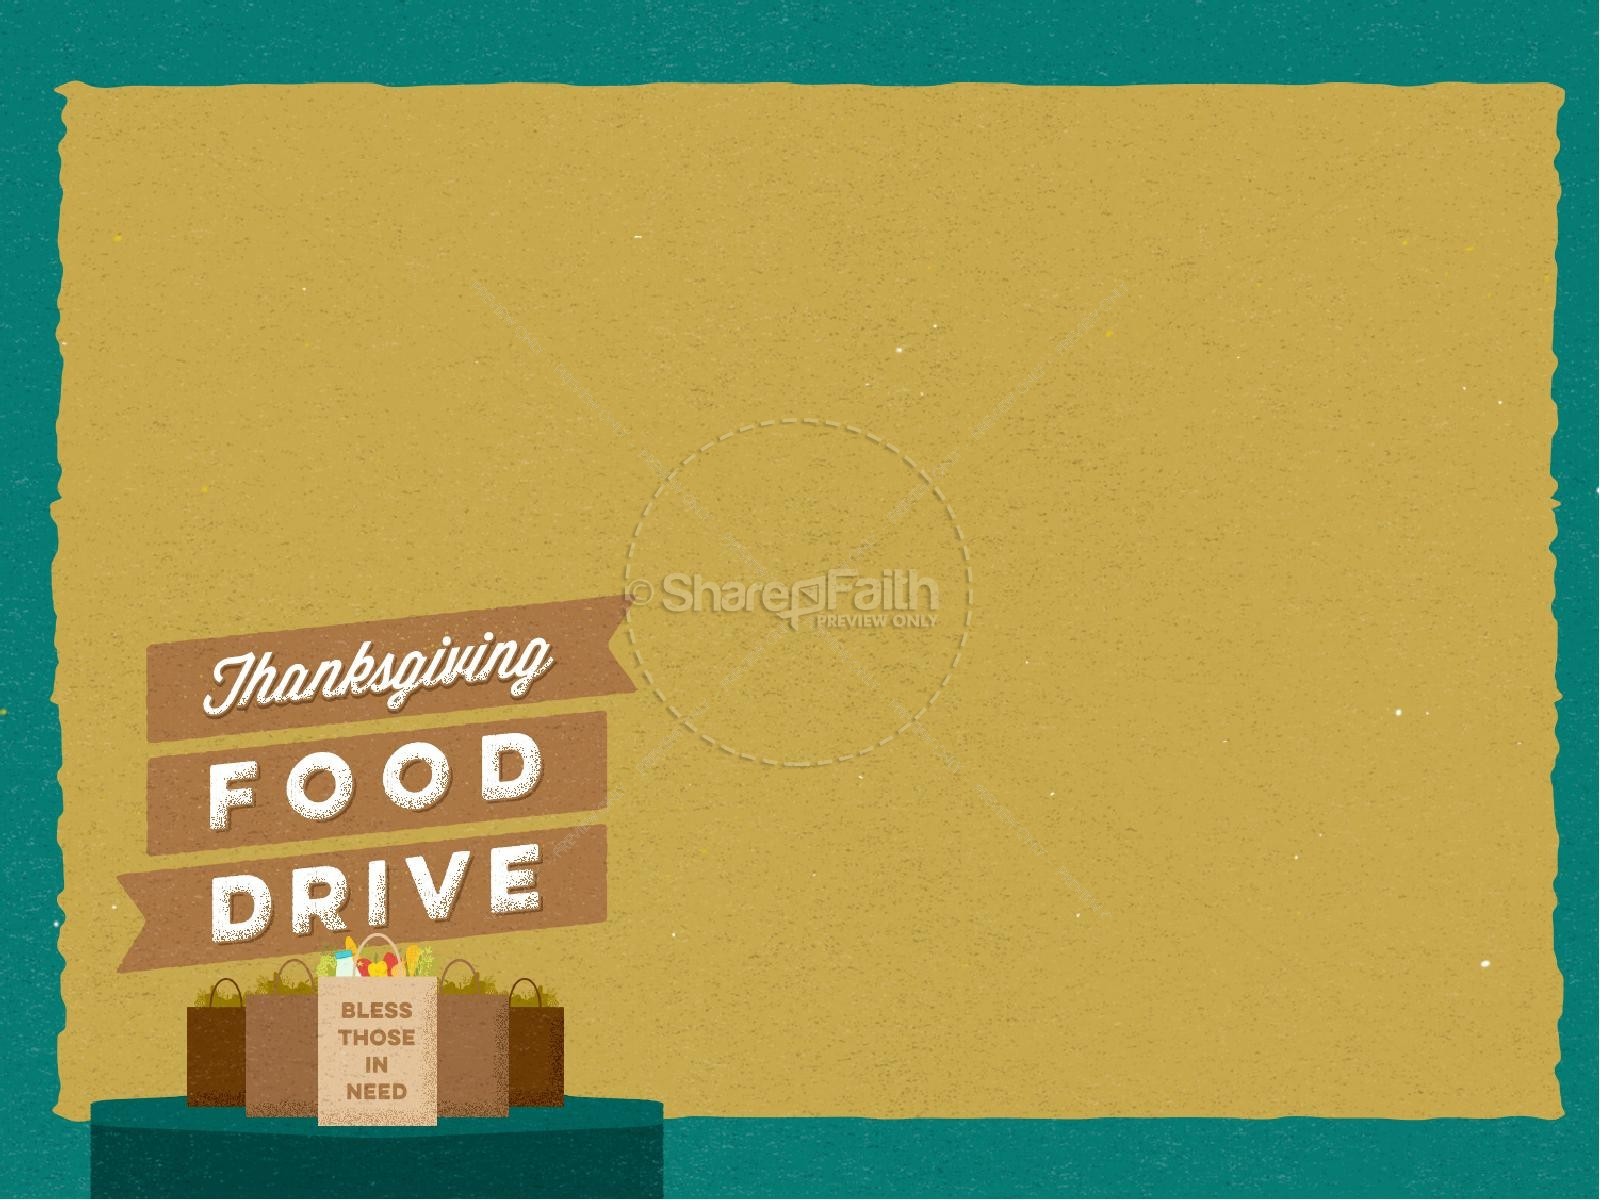 Thanksgiving Food Drive Christian PowerPoint